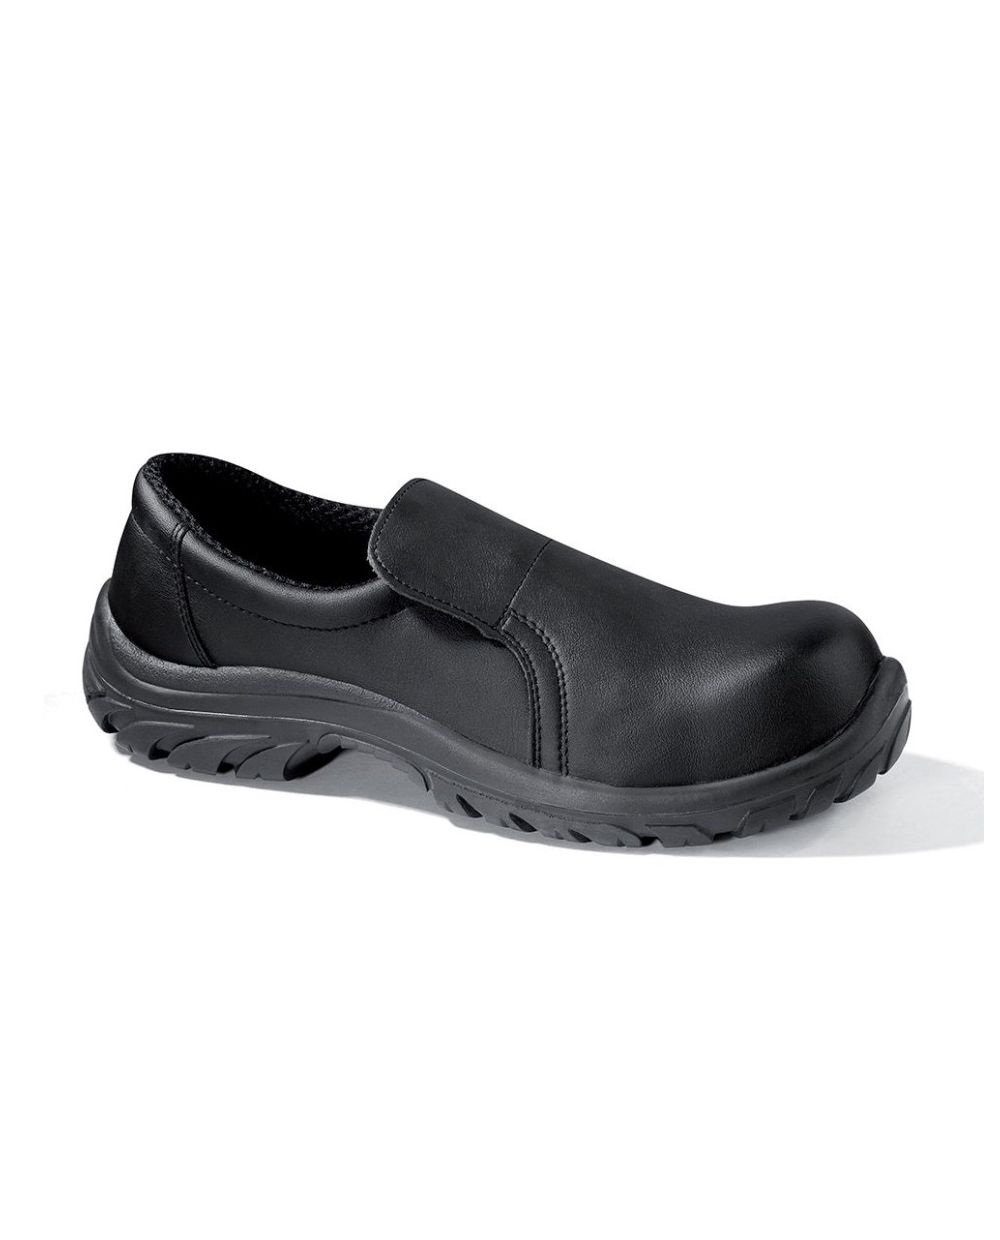 Baltix Low Black Slip On Shoe